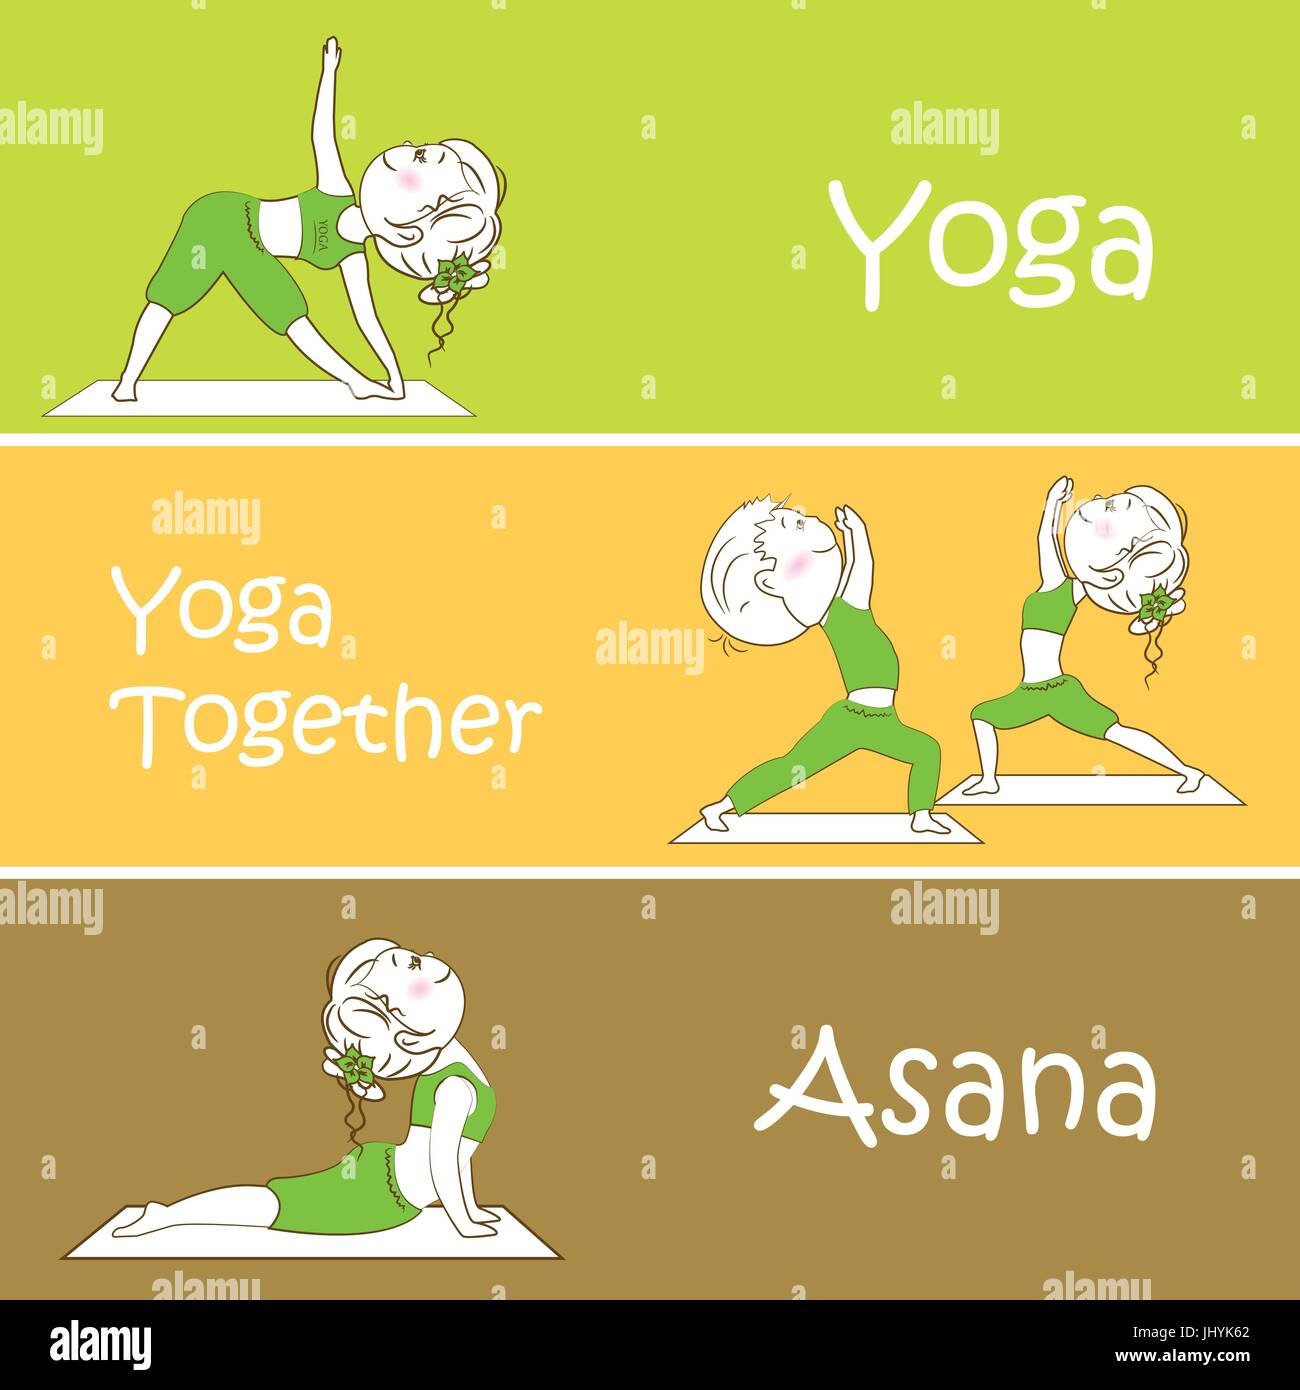 Yoga Vector Banner Professional Templates Or Design For Studio Website Magazine Publishing Print Presentation